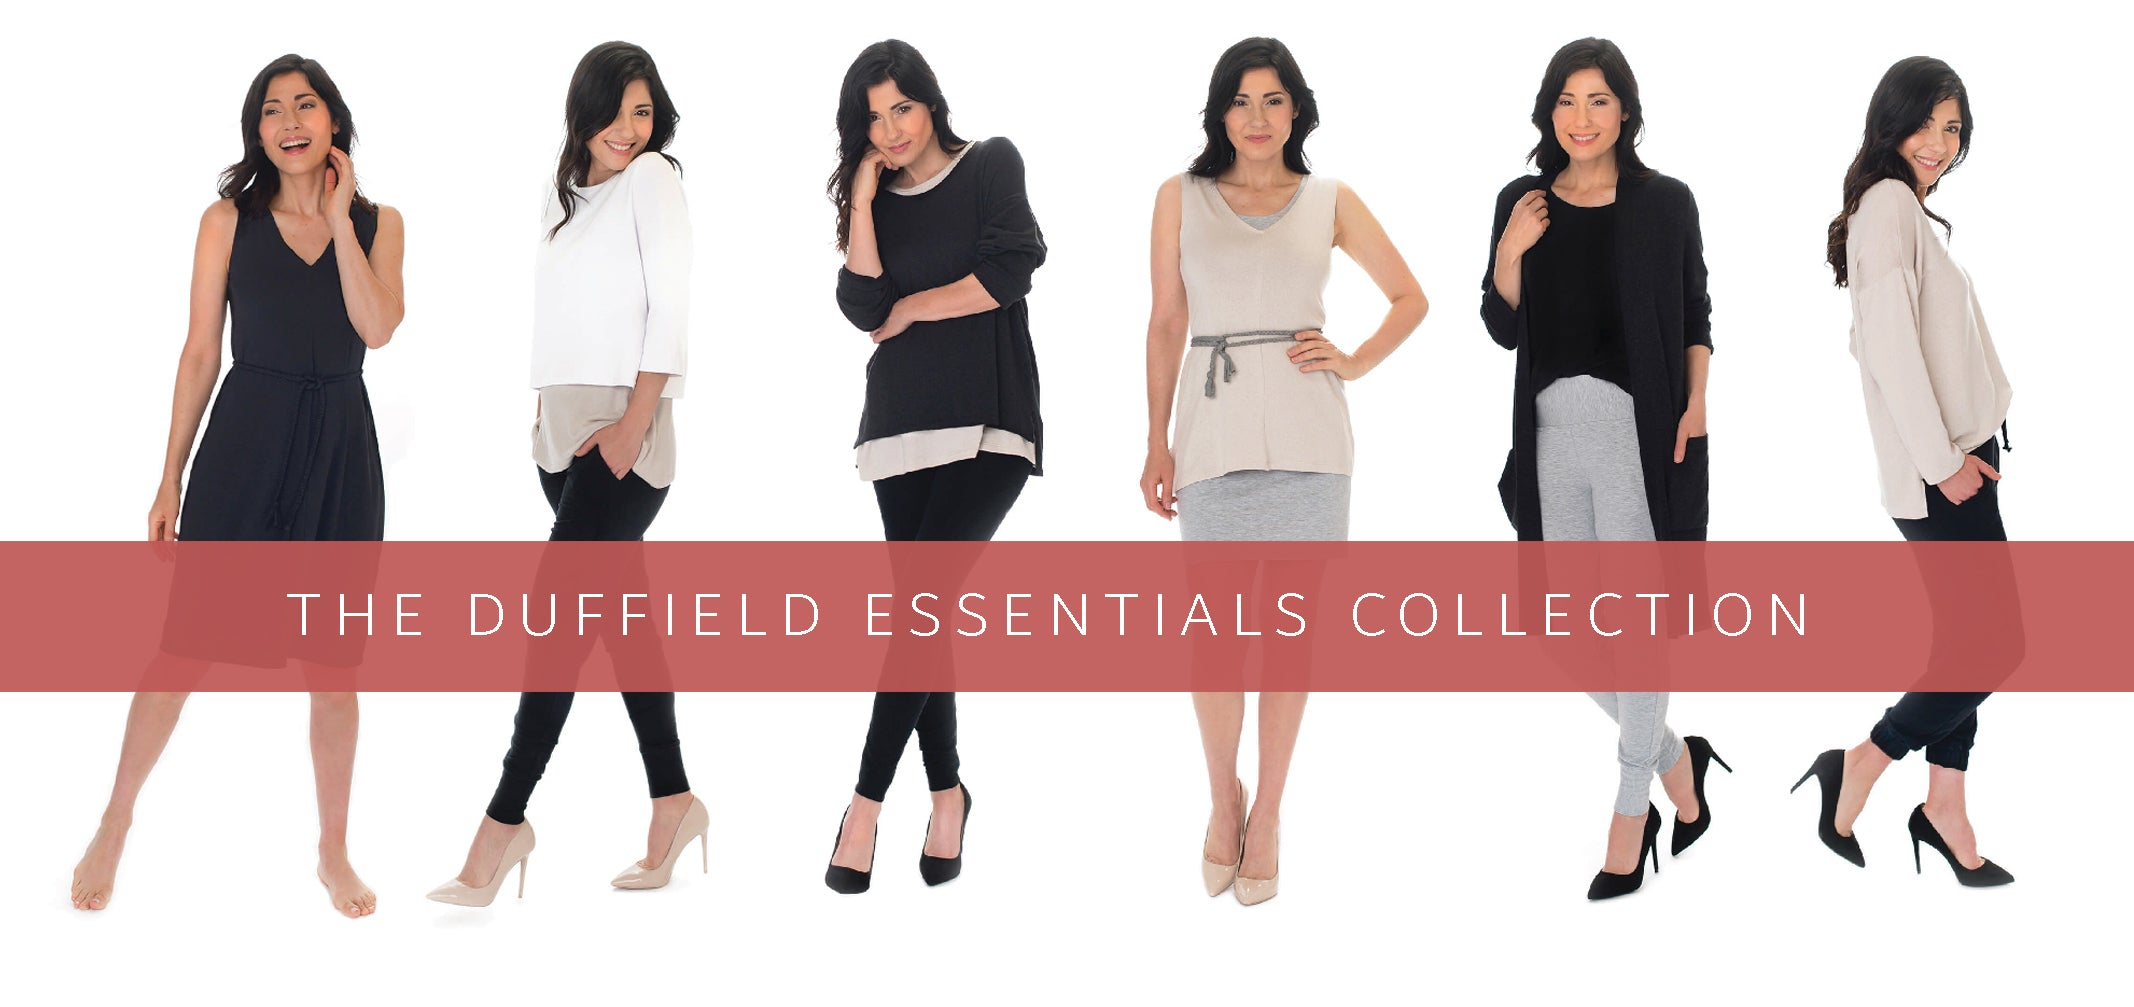 Duffield Design Essentials Collection is made from sustainable fabrics and are made in Canada.